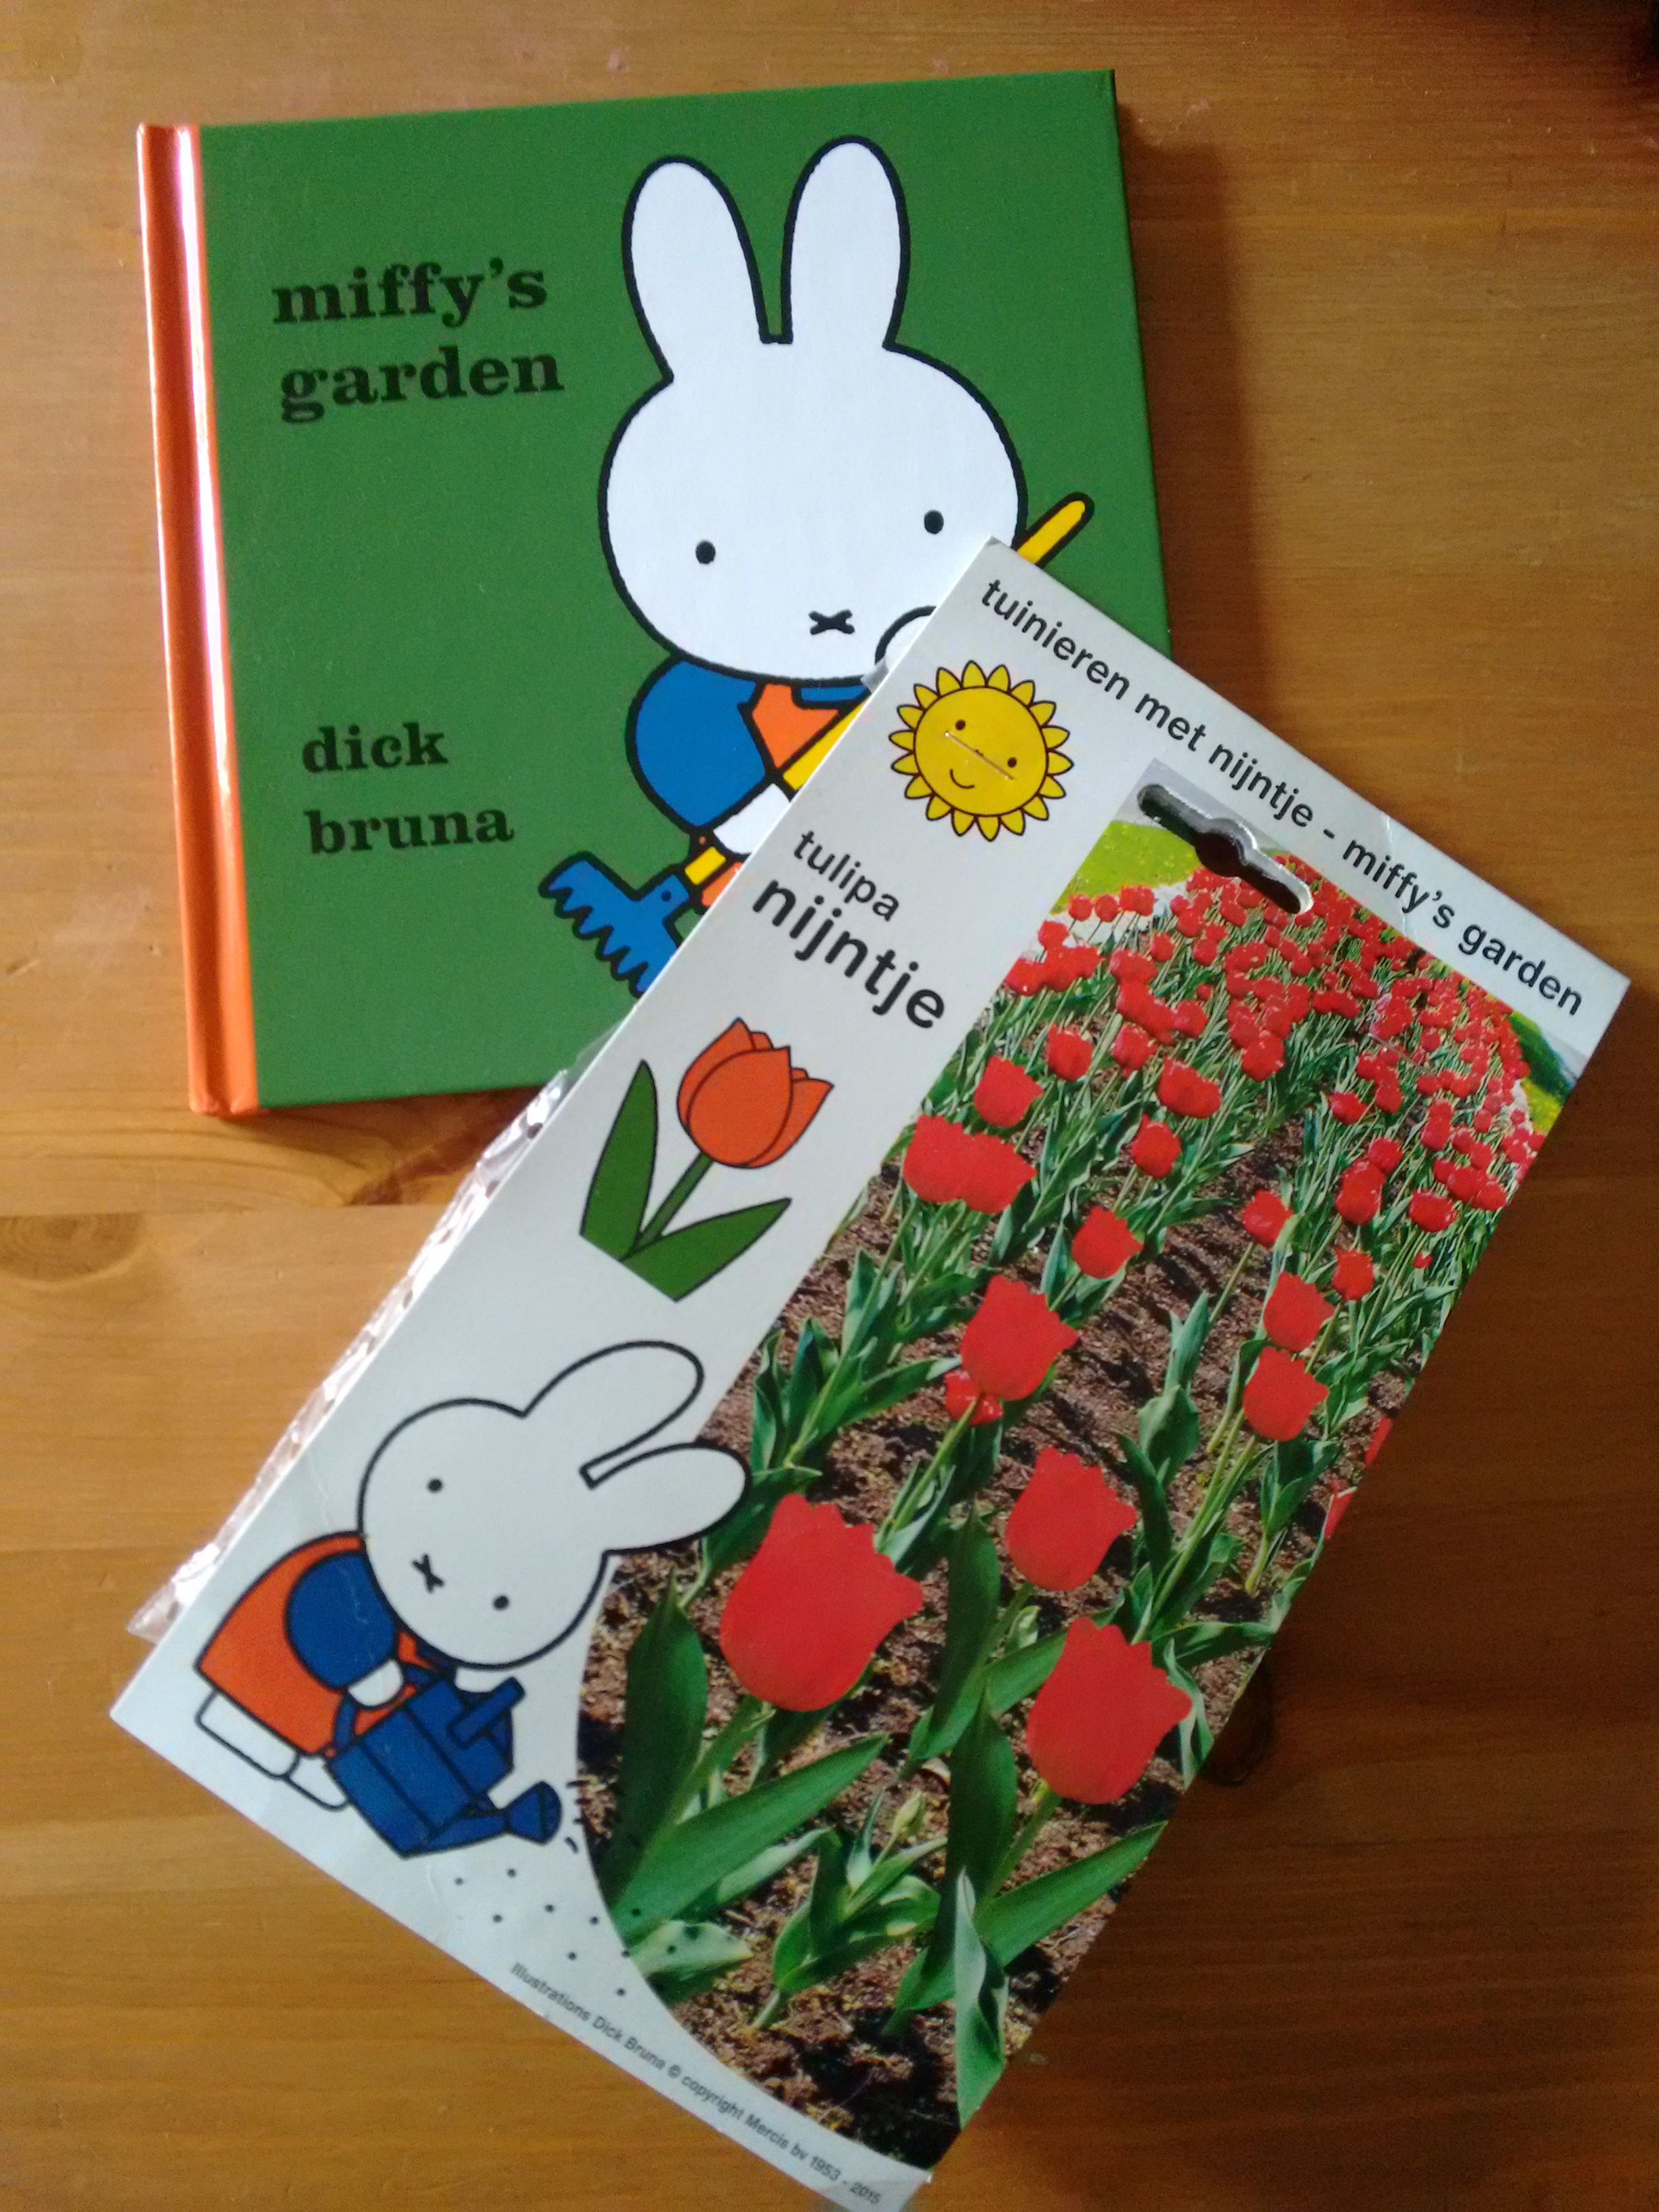 Miffy's Garden and Tulip Bulbs